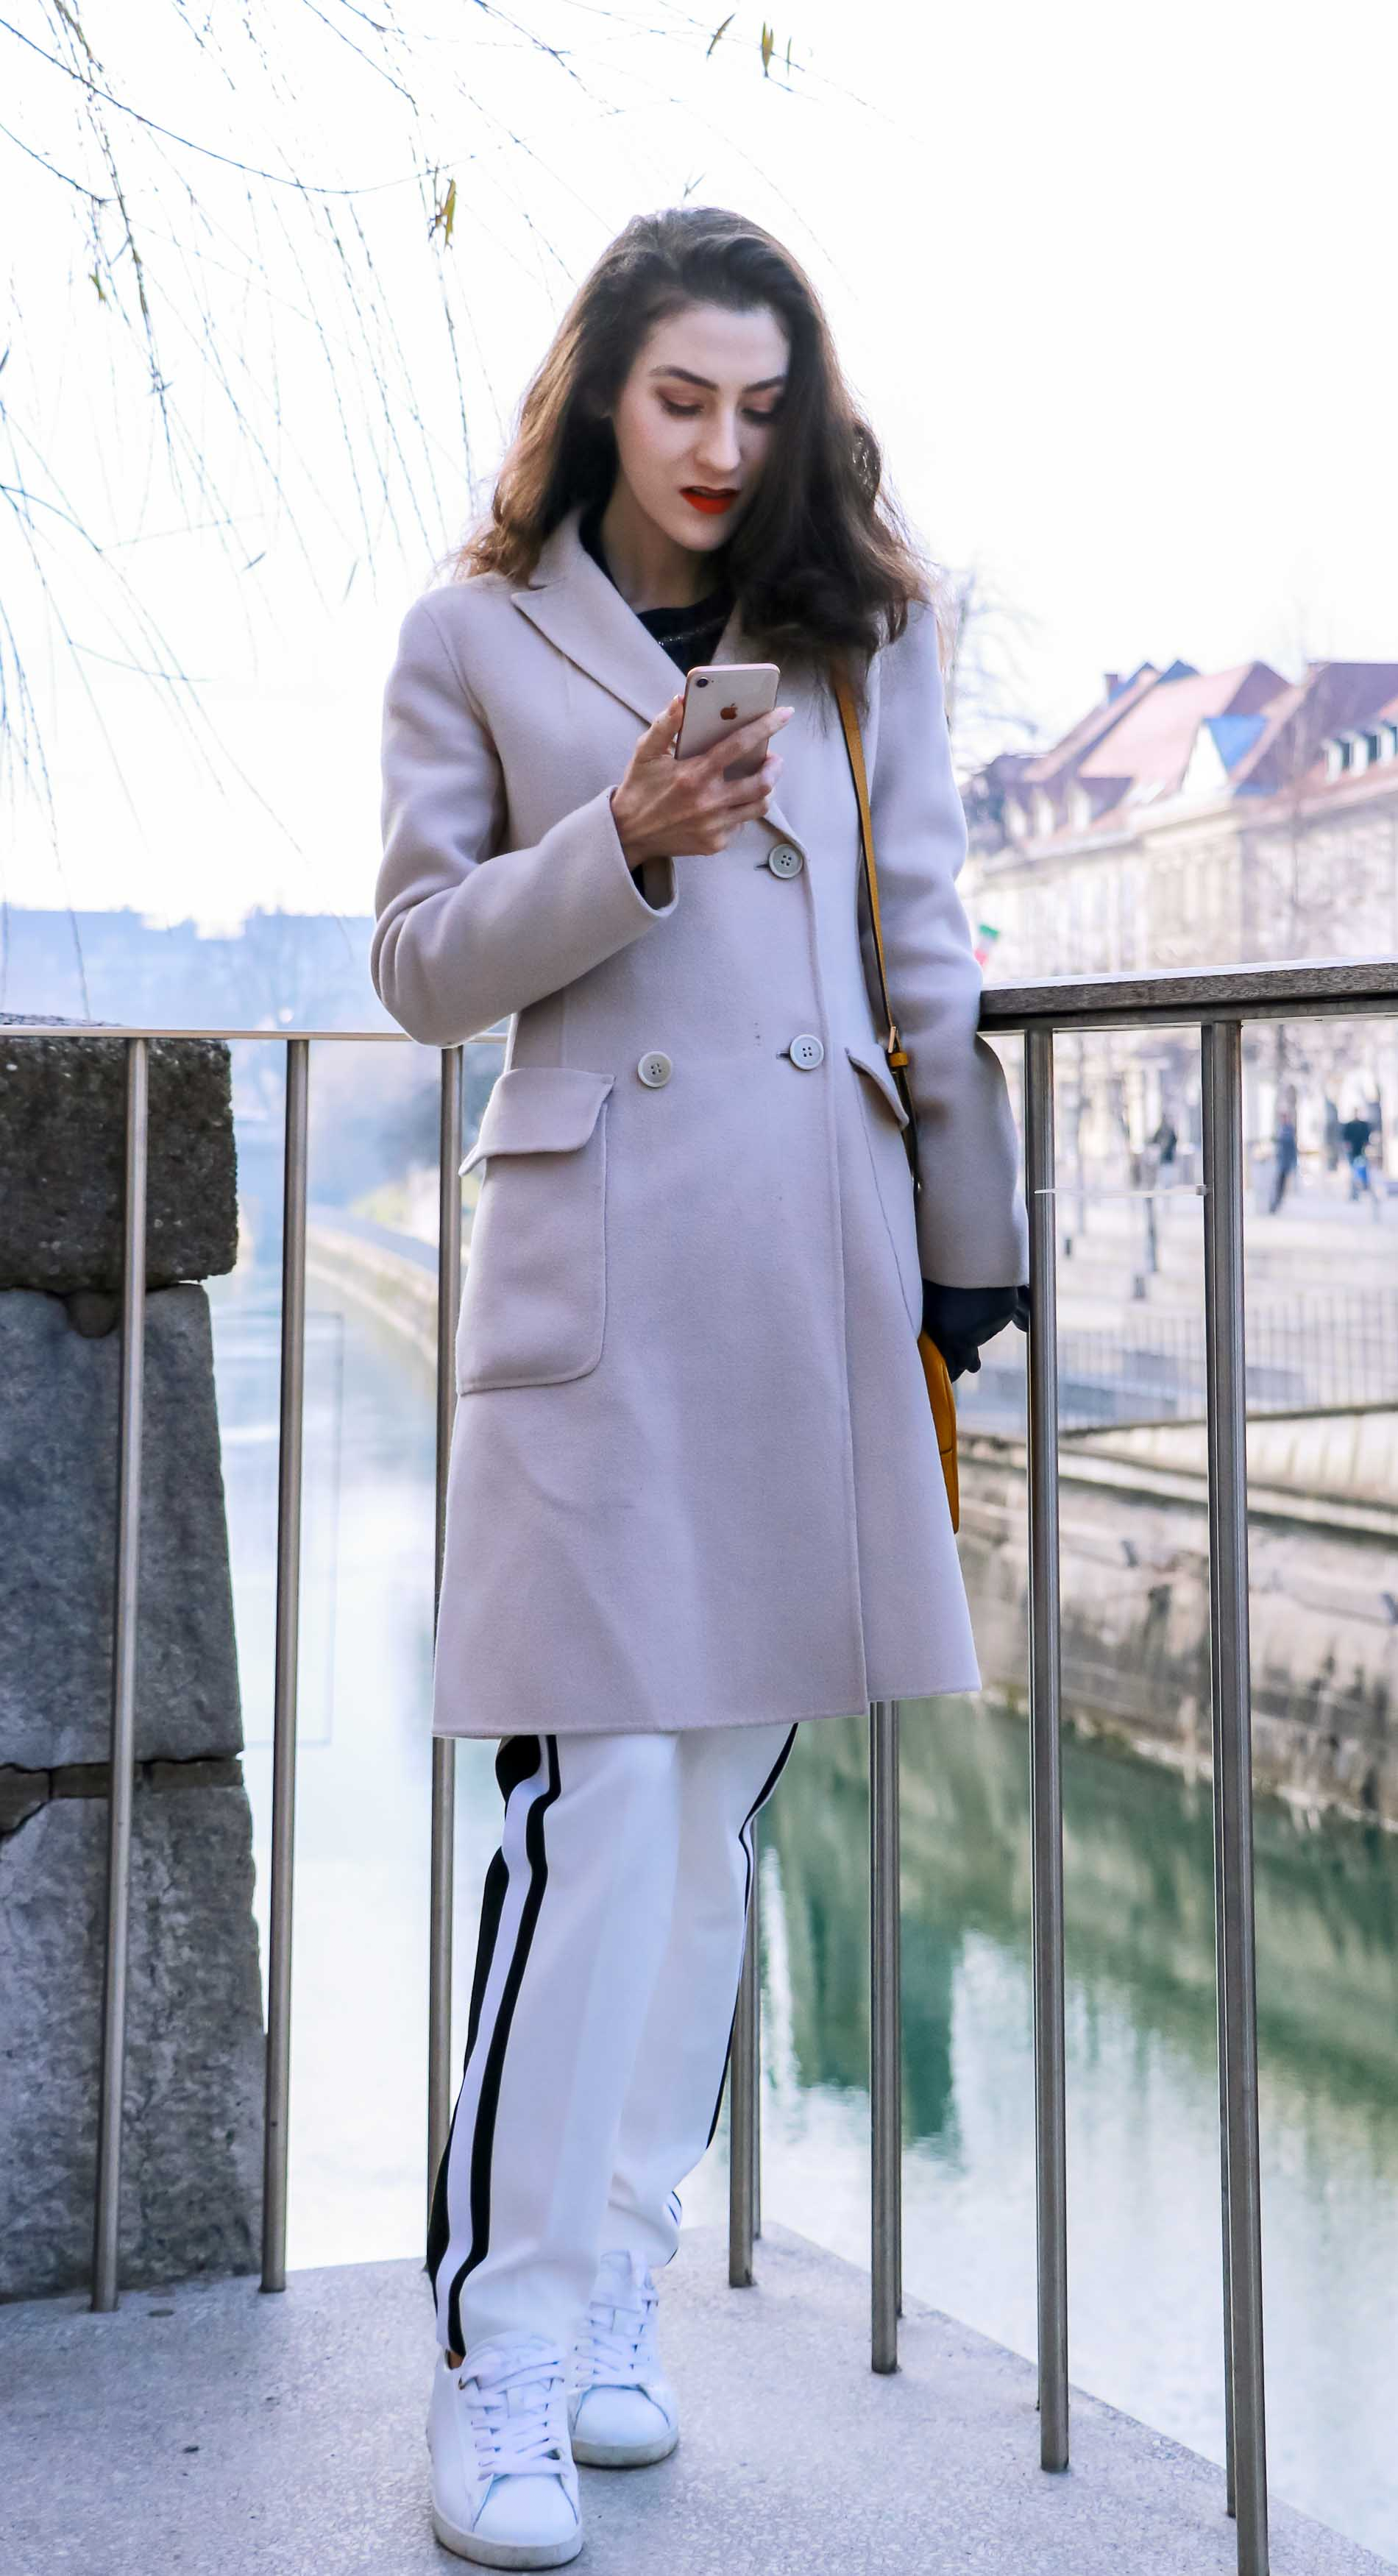 Fashion Blogger Veronika Lipar of Brunette from Wall Street dressed in white track pants with black side stripe from Escada, black silk blouse, off-white pastel double breasted coat from Weekend Max Mara, white leather sneakers from Diesel, yellow shoulder bag from Escada while checking iPhone